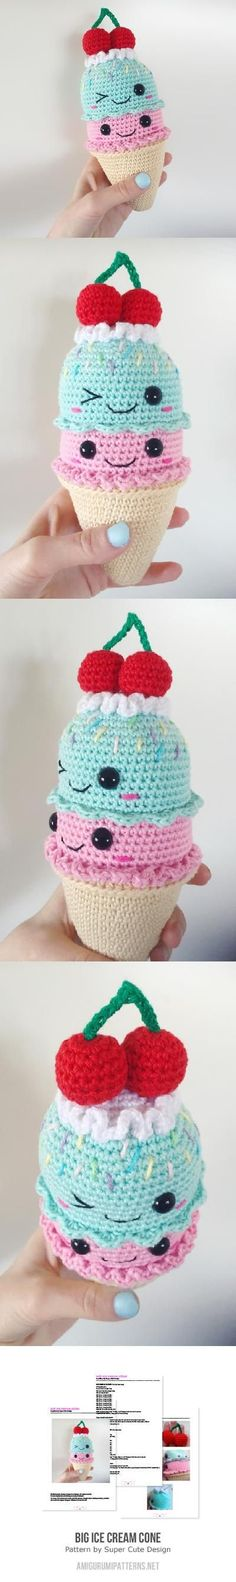 cutest kawaii ice cream cone crochet amigurumi mini friend with a cherry on top Big Ice Cream Cone Amigurumi Pattern~ (Nova asked for the white bunny ice cream cone, and Zephyr wants a popsicle)